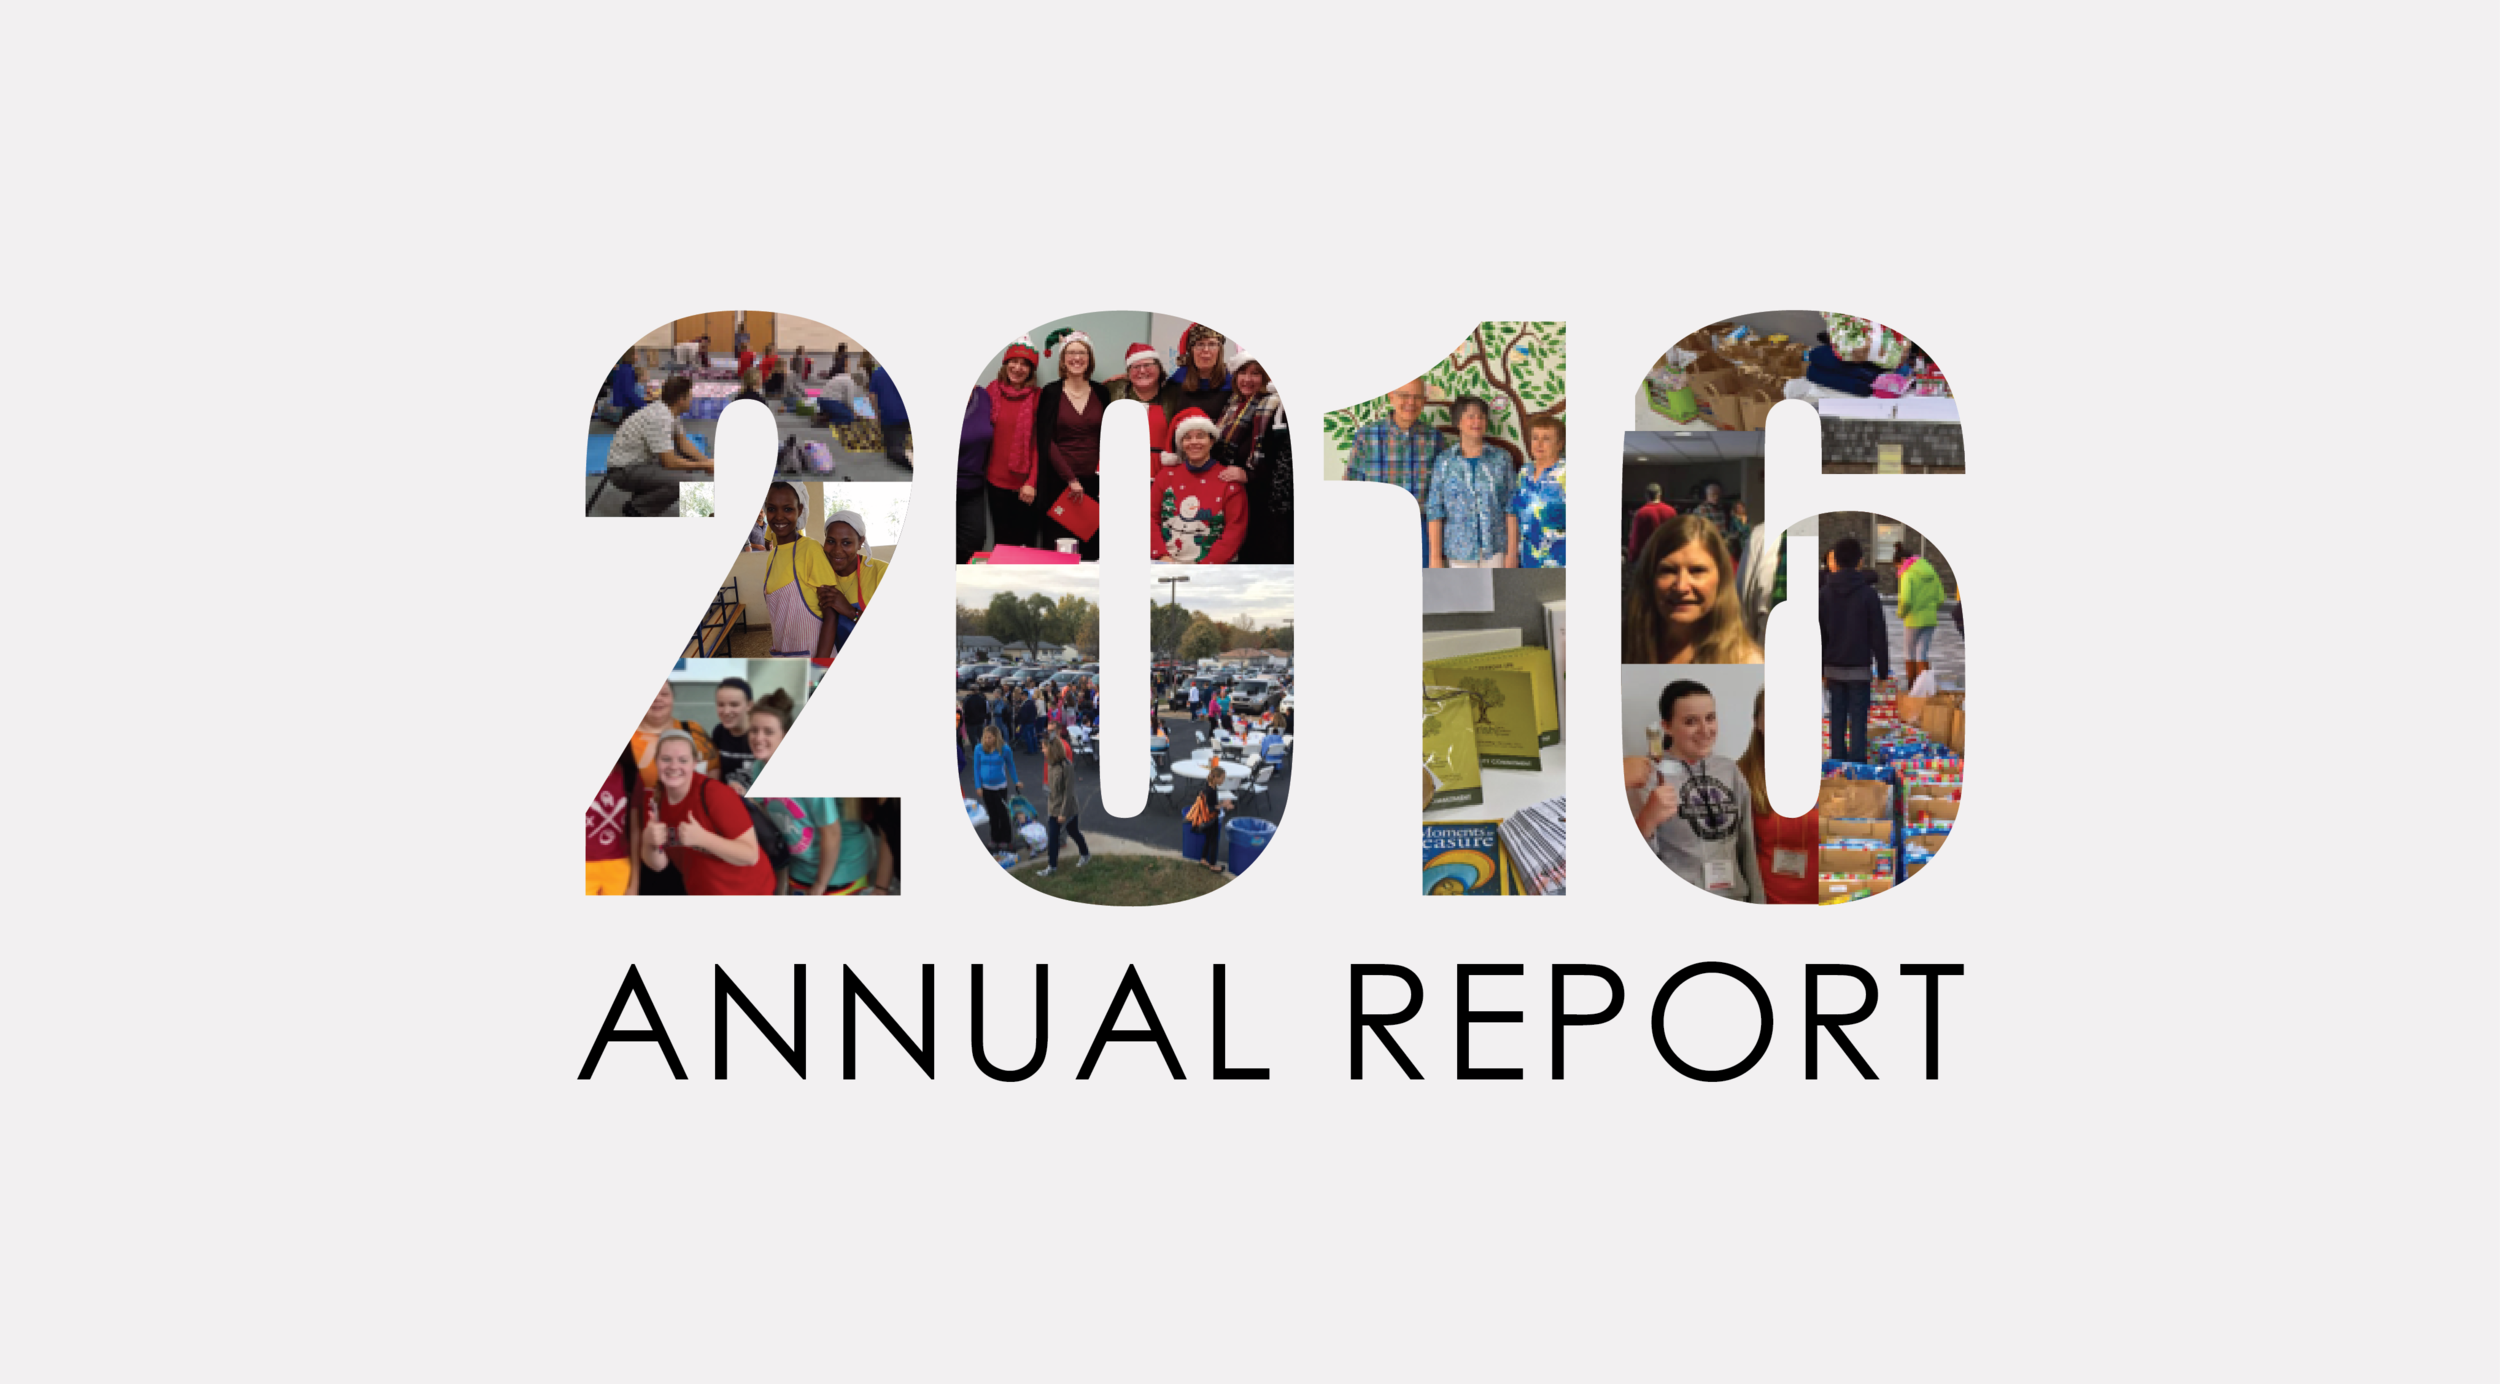 annualreport-01.png